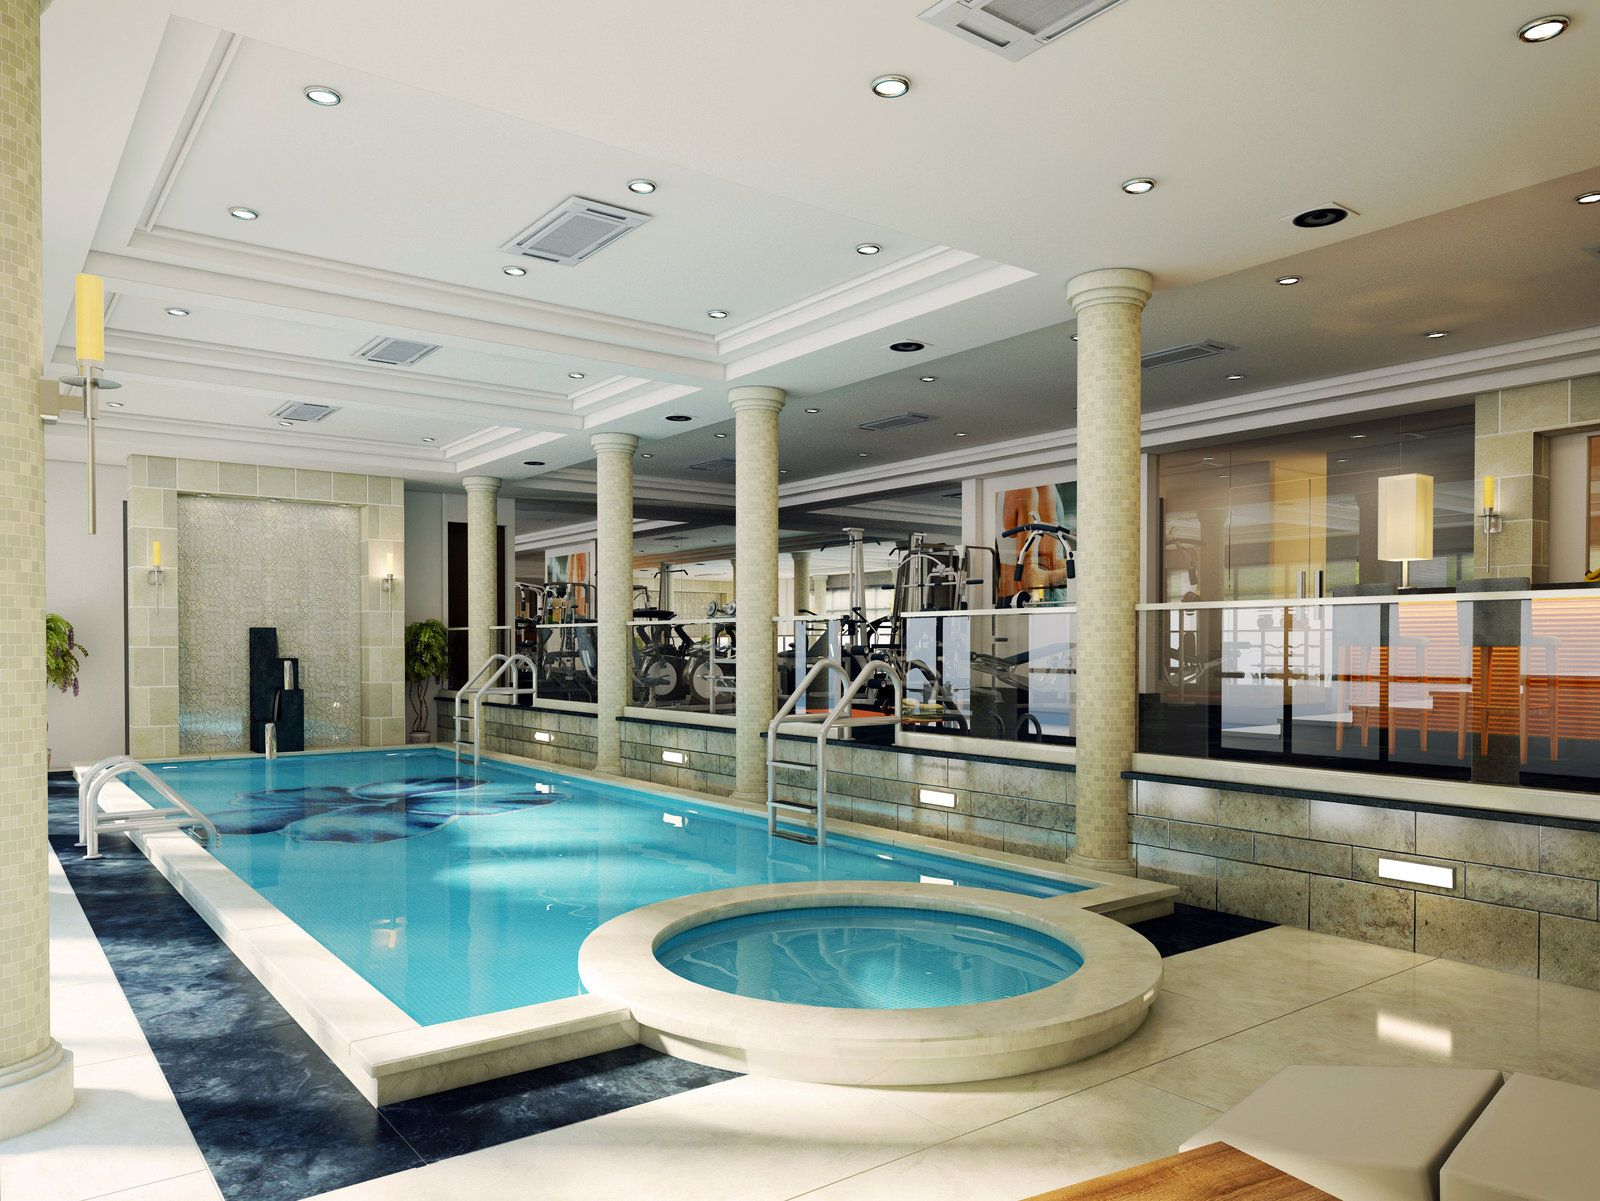 Dream House With Indoor Pool basement pool, workout room, hot tub | dream house | pinterest